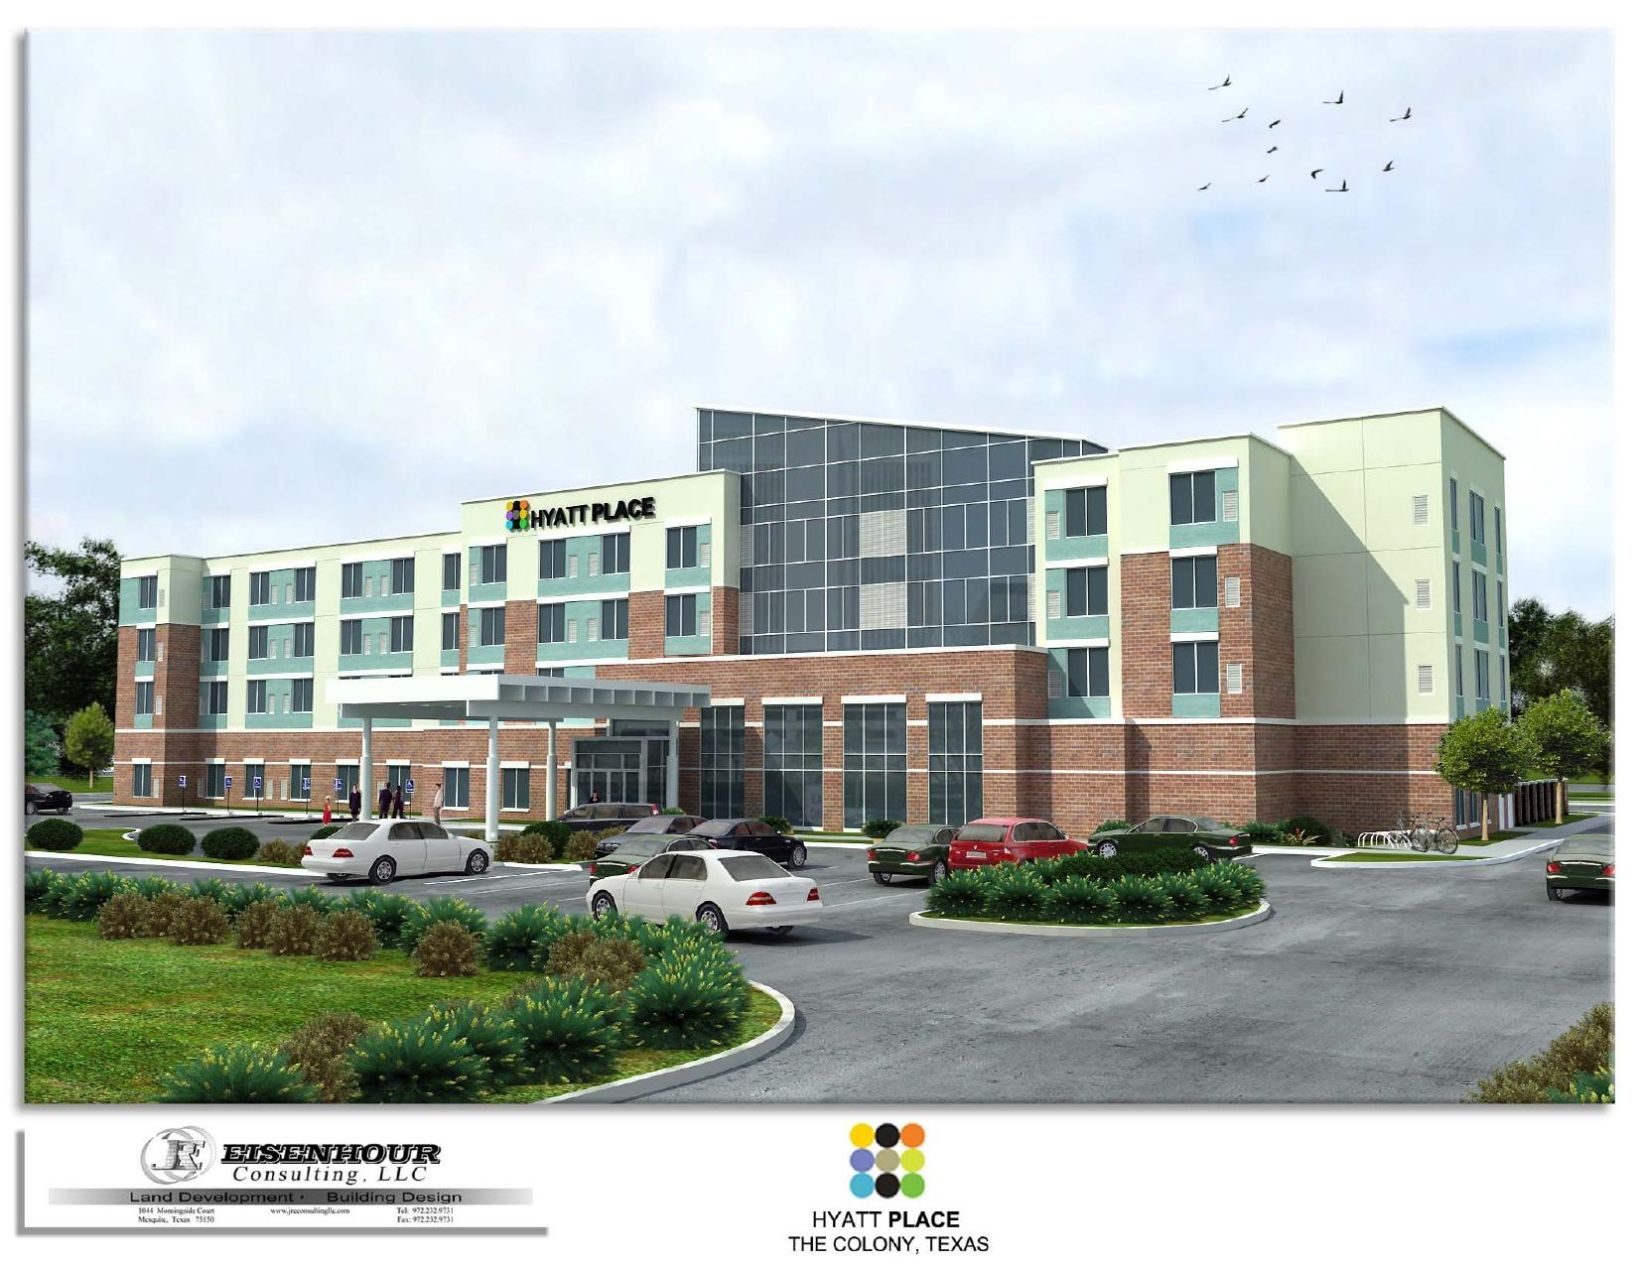 Download PDF Hyatt Place rendering Hyatt Place